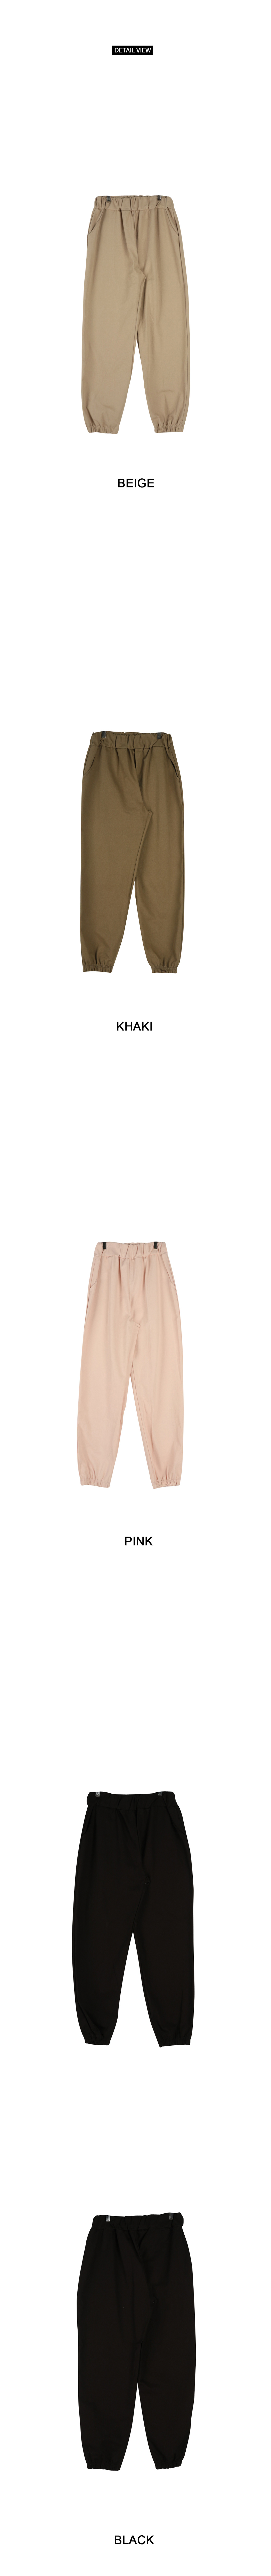 Cotton Jogger Bending Pants